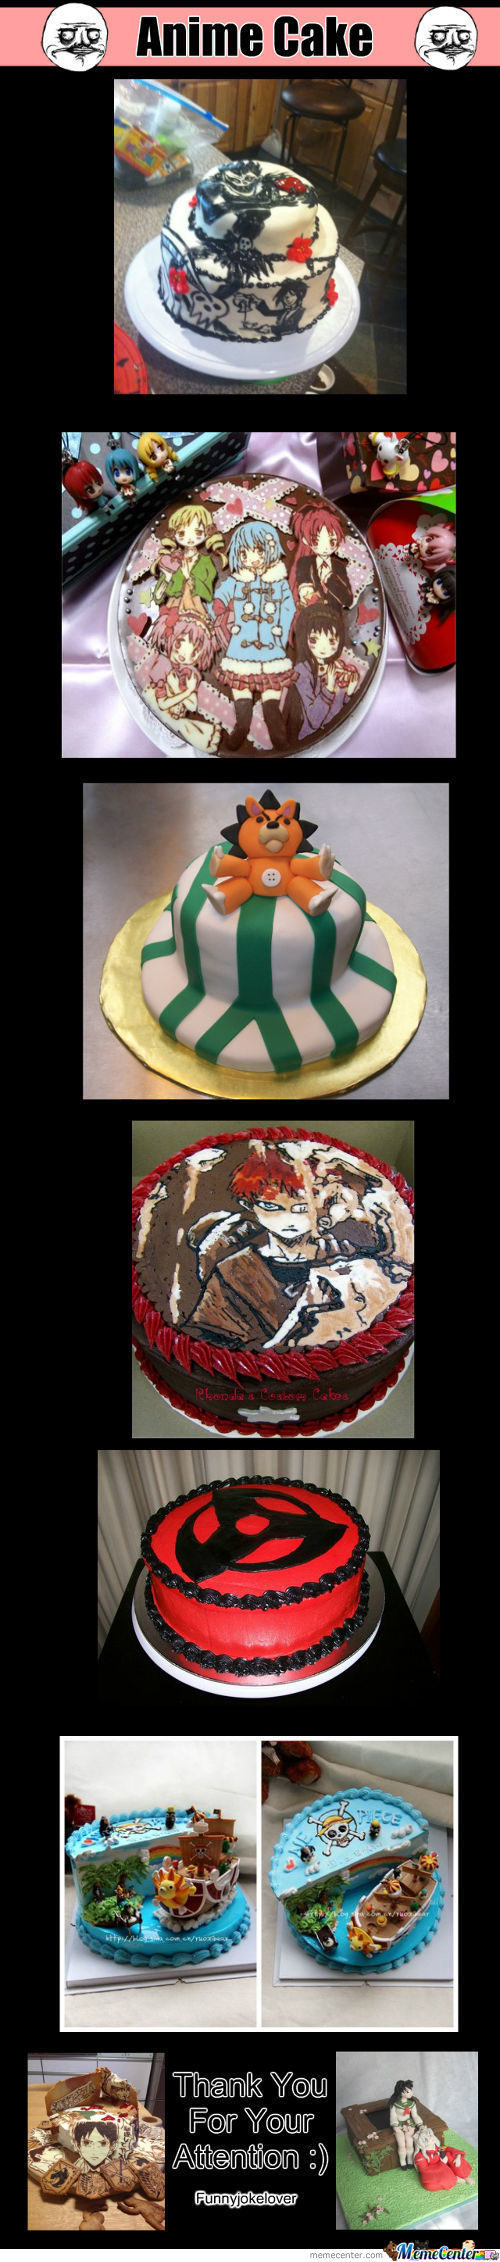 I Wish I Had These Cakes For My Birthday